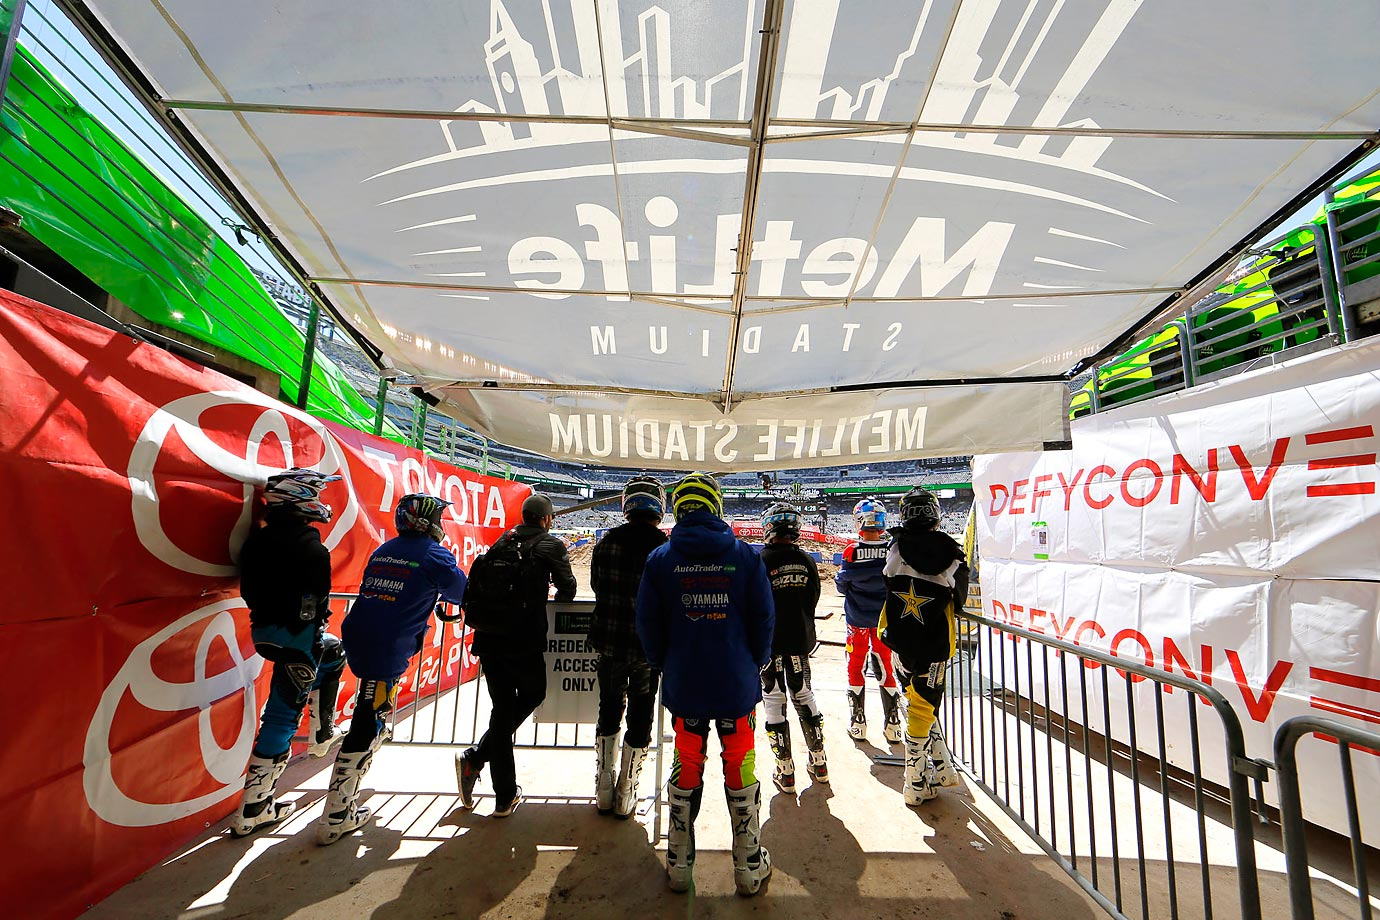 Supercross riders survery the track before Saturday's event at Metlife Stadium.